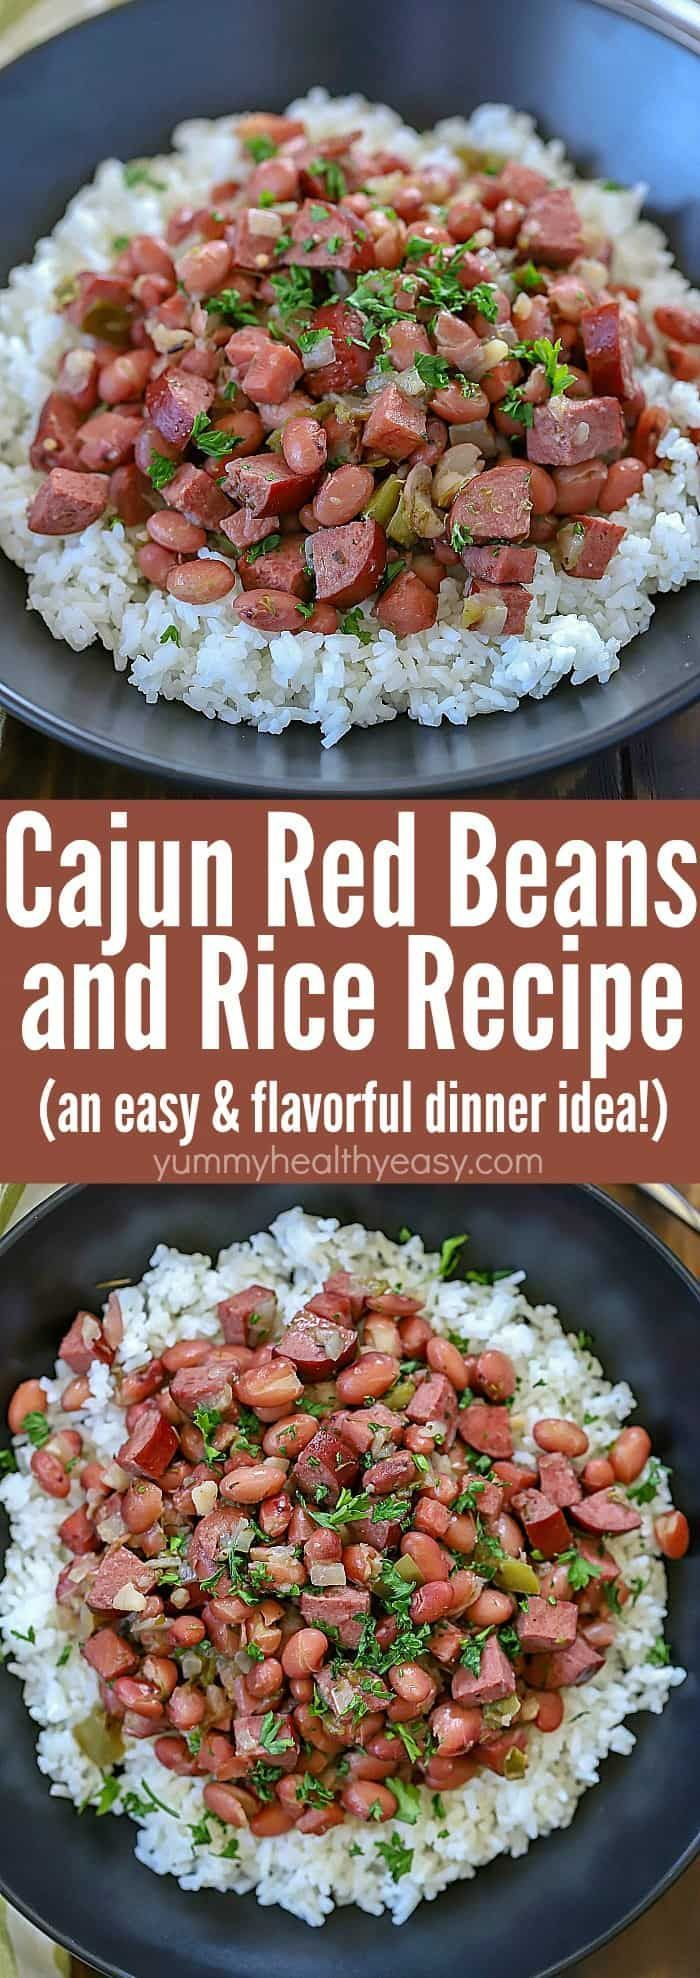 Spice your dinner up tonight and make this Cajun Red Beans and Rice Recipe! Slow cook beans, ham, turkey sausage and spices in a skillet to let the flavors combine. Serve over rice for a delicious dinner the whole family will fall in love with! #beans #rice #recipe #easy #dinnerrecipe #ham #sausage #redbeans #slowcooked via @jennikolaus #sausagedinner